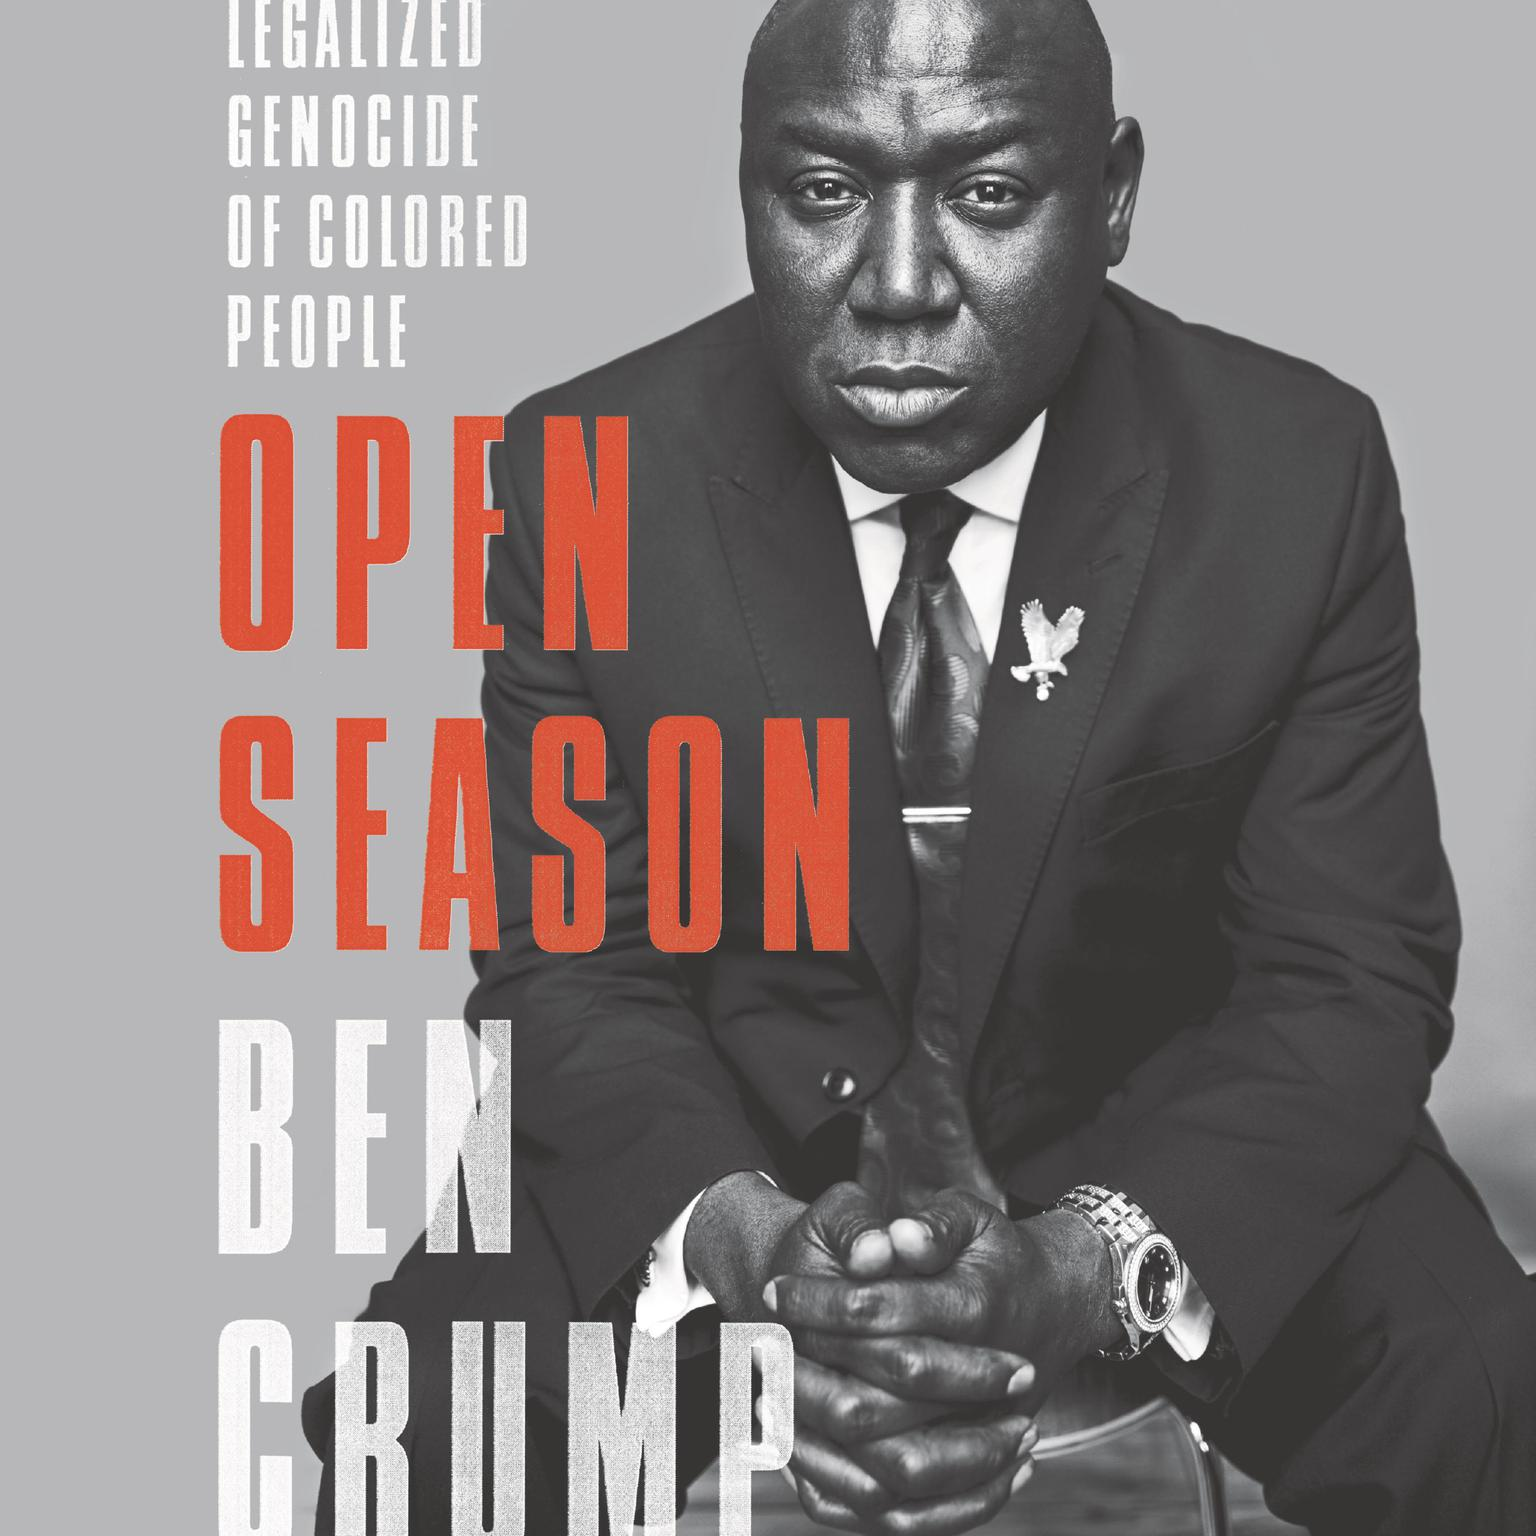 Printable Open Season: Legalized Genocide of Colored People Audiobook Cover Art